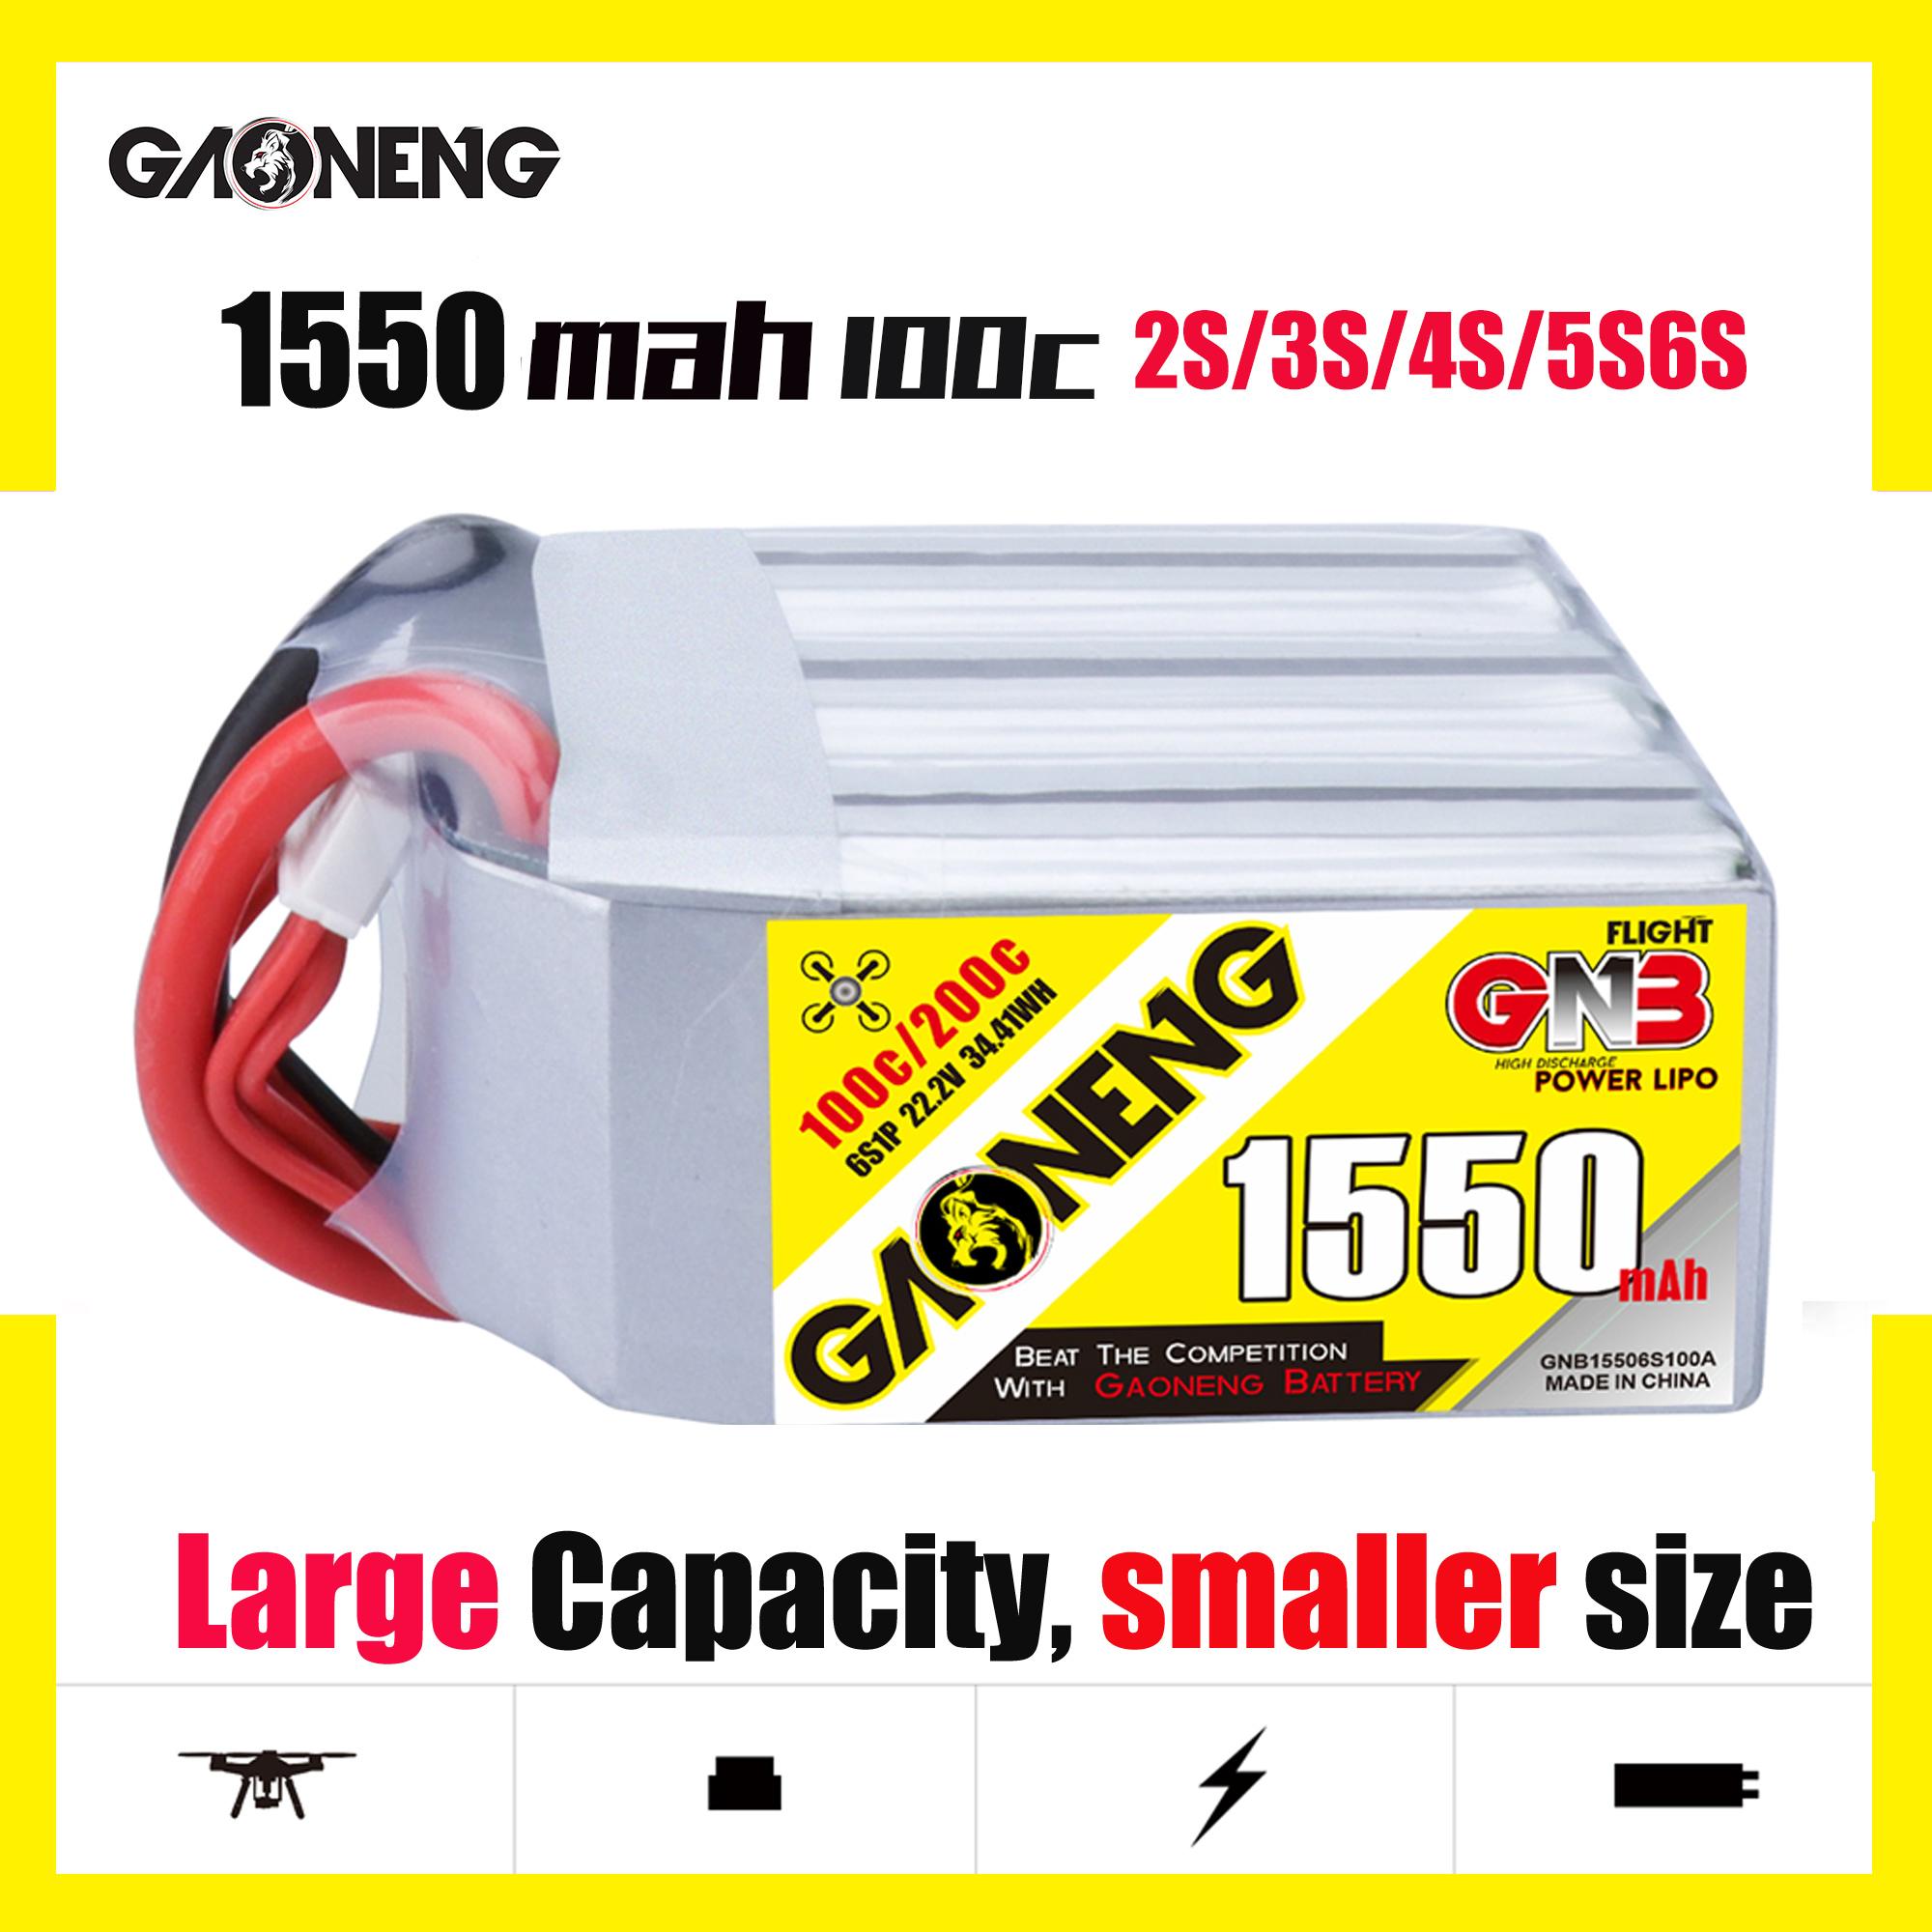 Gaoneng GNB 1550mAh 100C 2P 2S 3S 4S 5S 6S 4-axis FPV Battery 7.4V-22.2V High Power Batteries Smaller Large Capacity